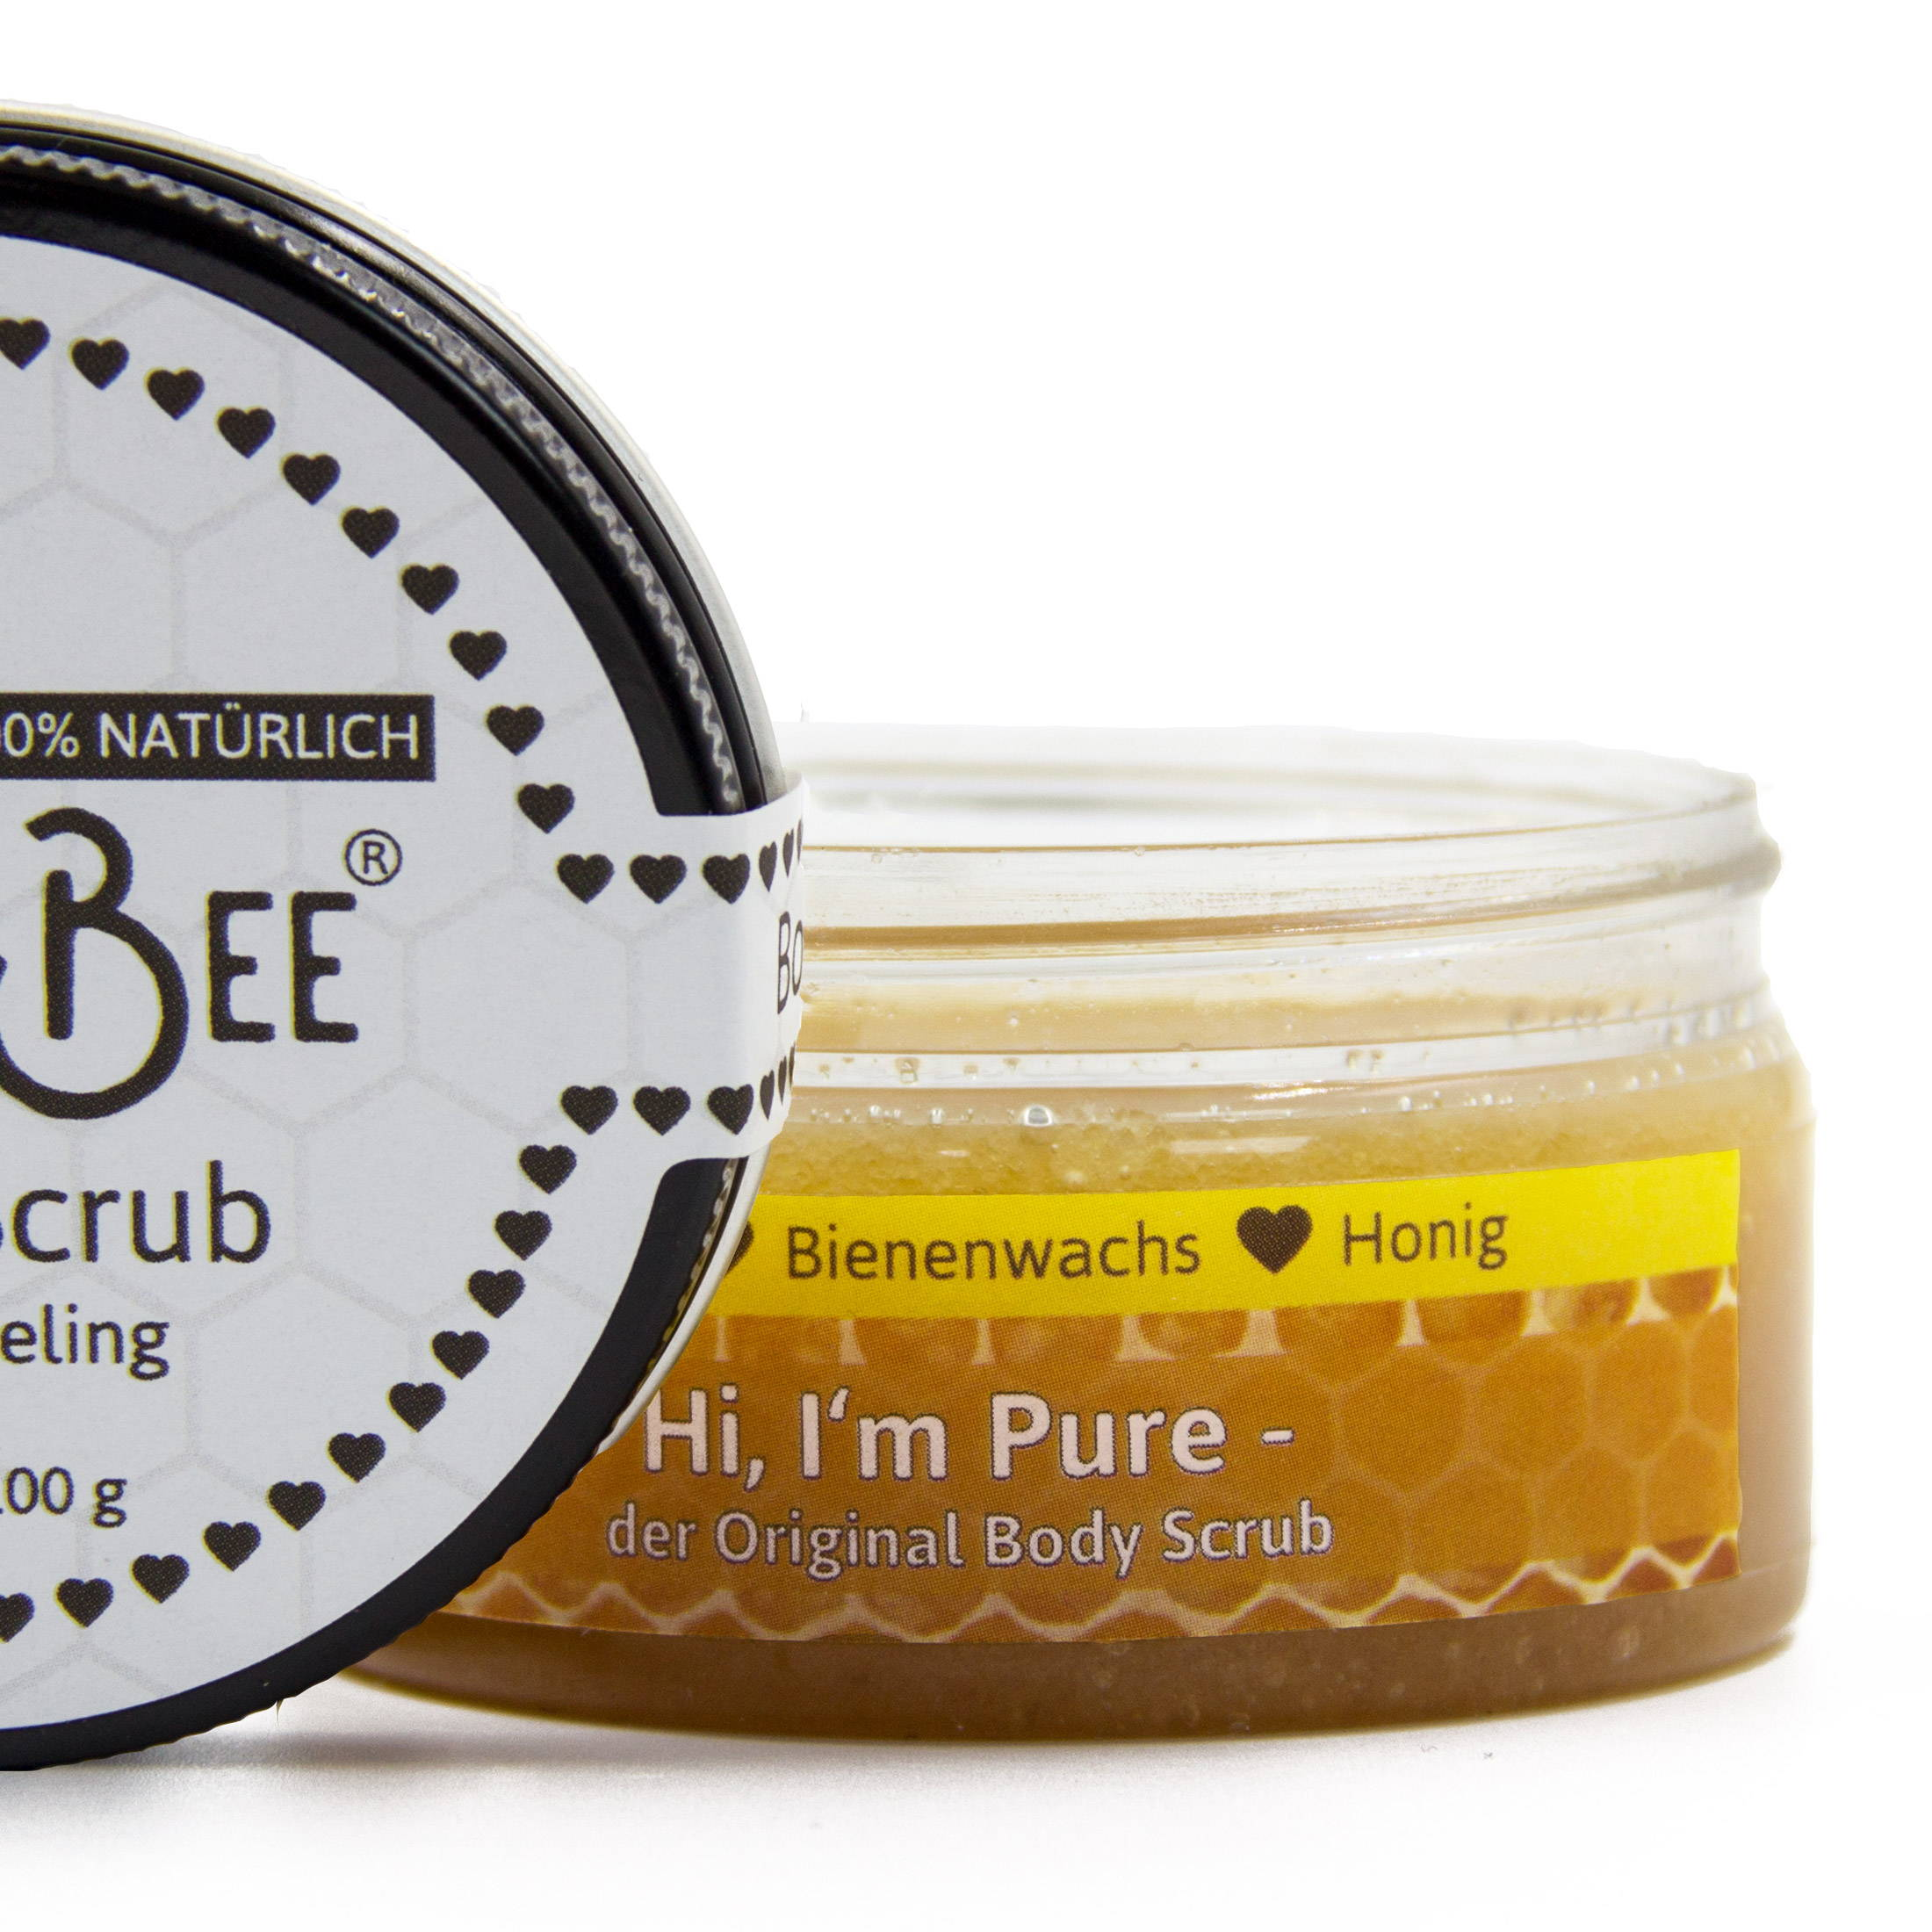 Hi, I'm Pure - The Original Body Scrub | PureBee